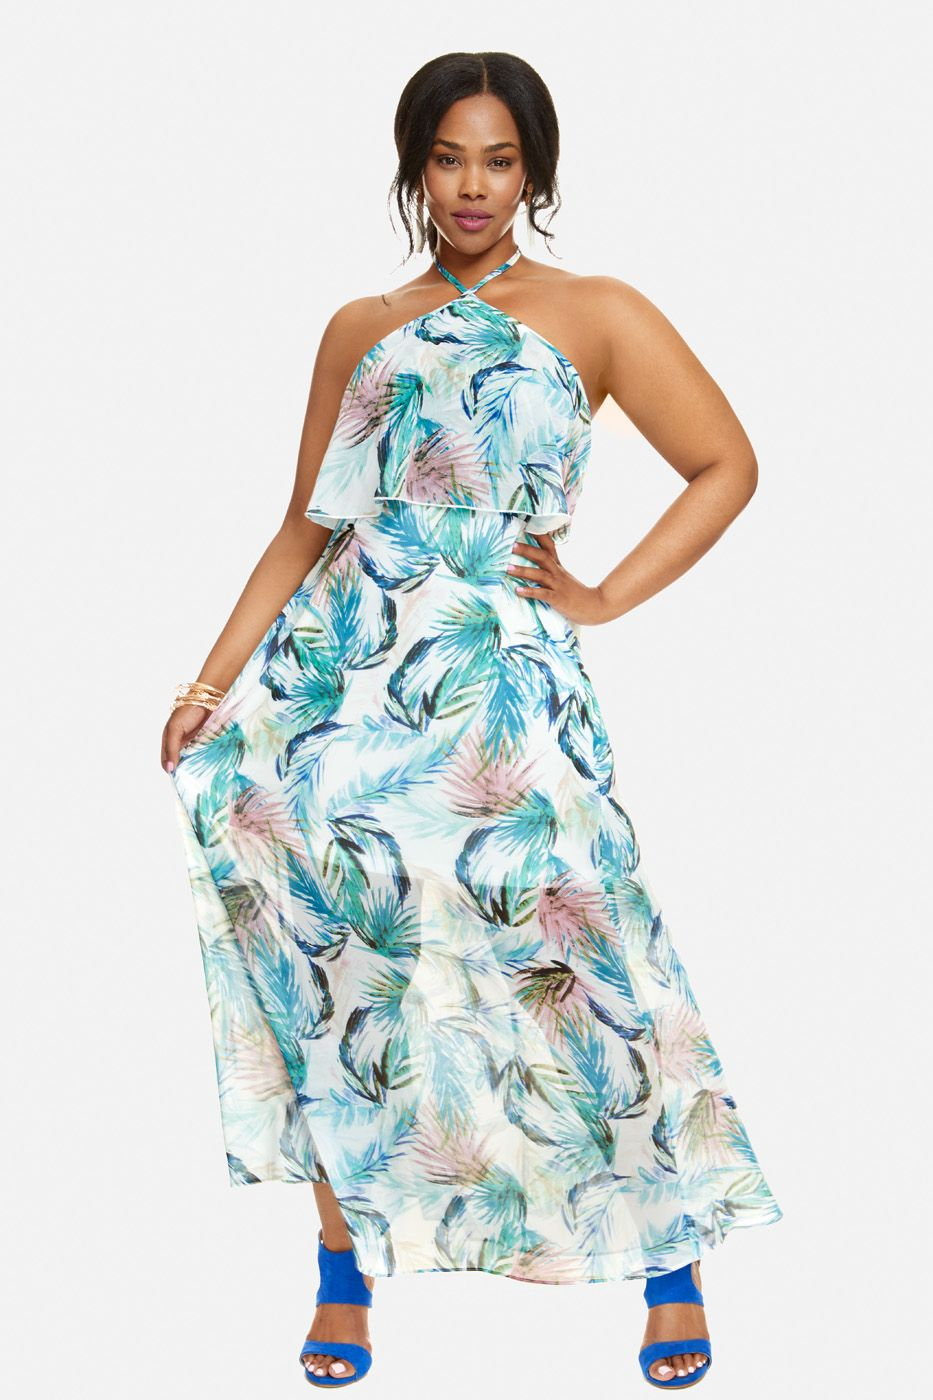 Plus Size Carlie Halter Tiered Maxi Dress | Style- "|933|1400|?|en|2|90e3df4456a636d5396e873cd5f9468f|False|UNSURE|0.3357580900192261